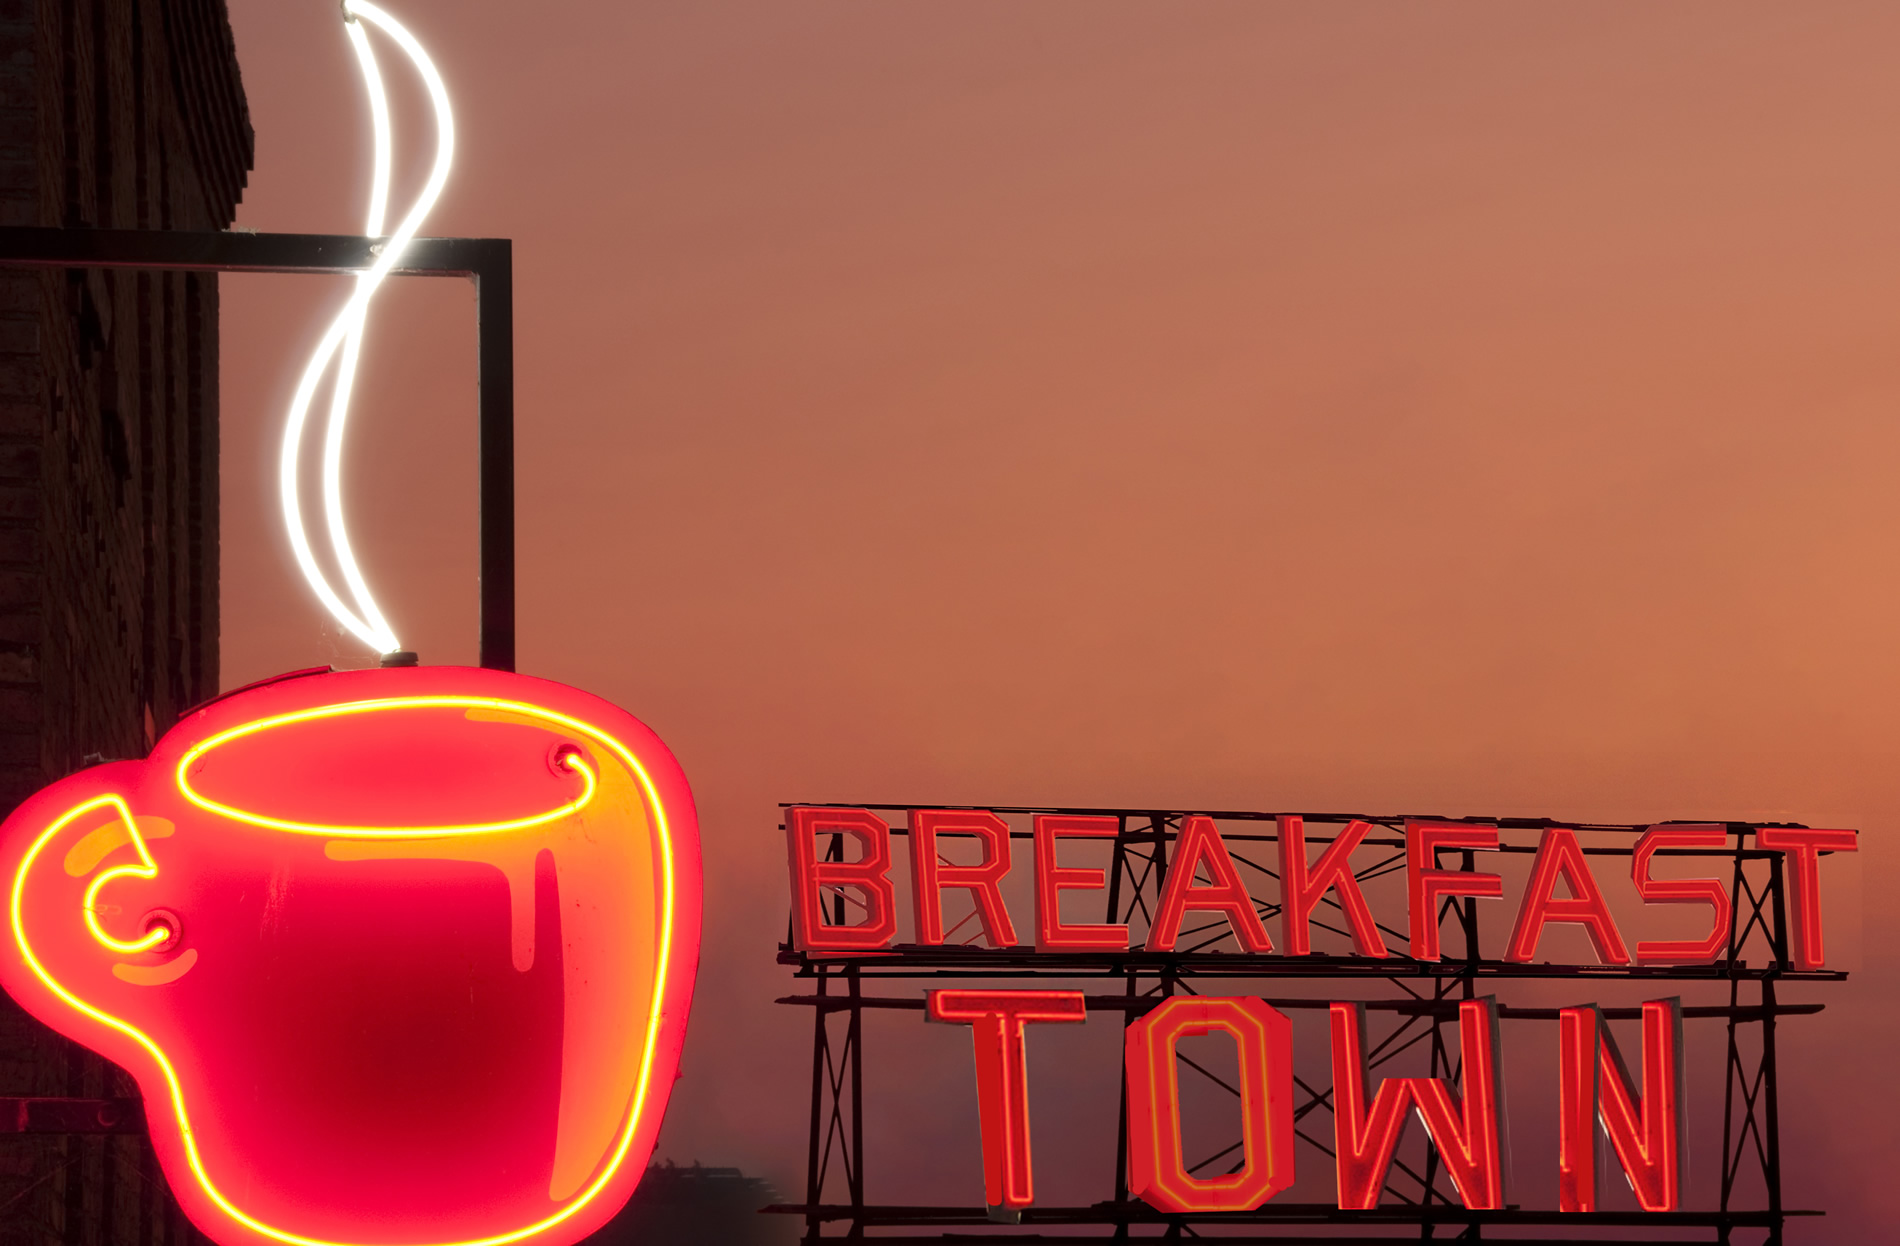 Photo by night of Breakfast Town signage as a creative communications and brand strategy agency in London